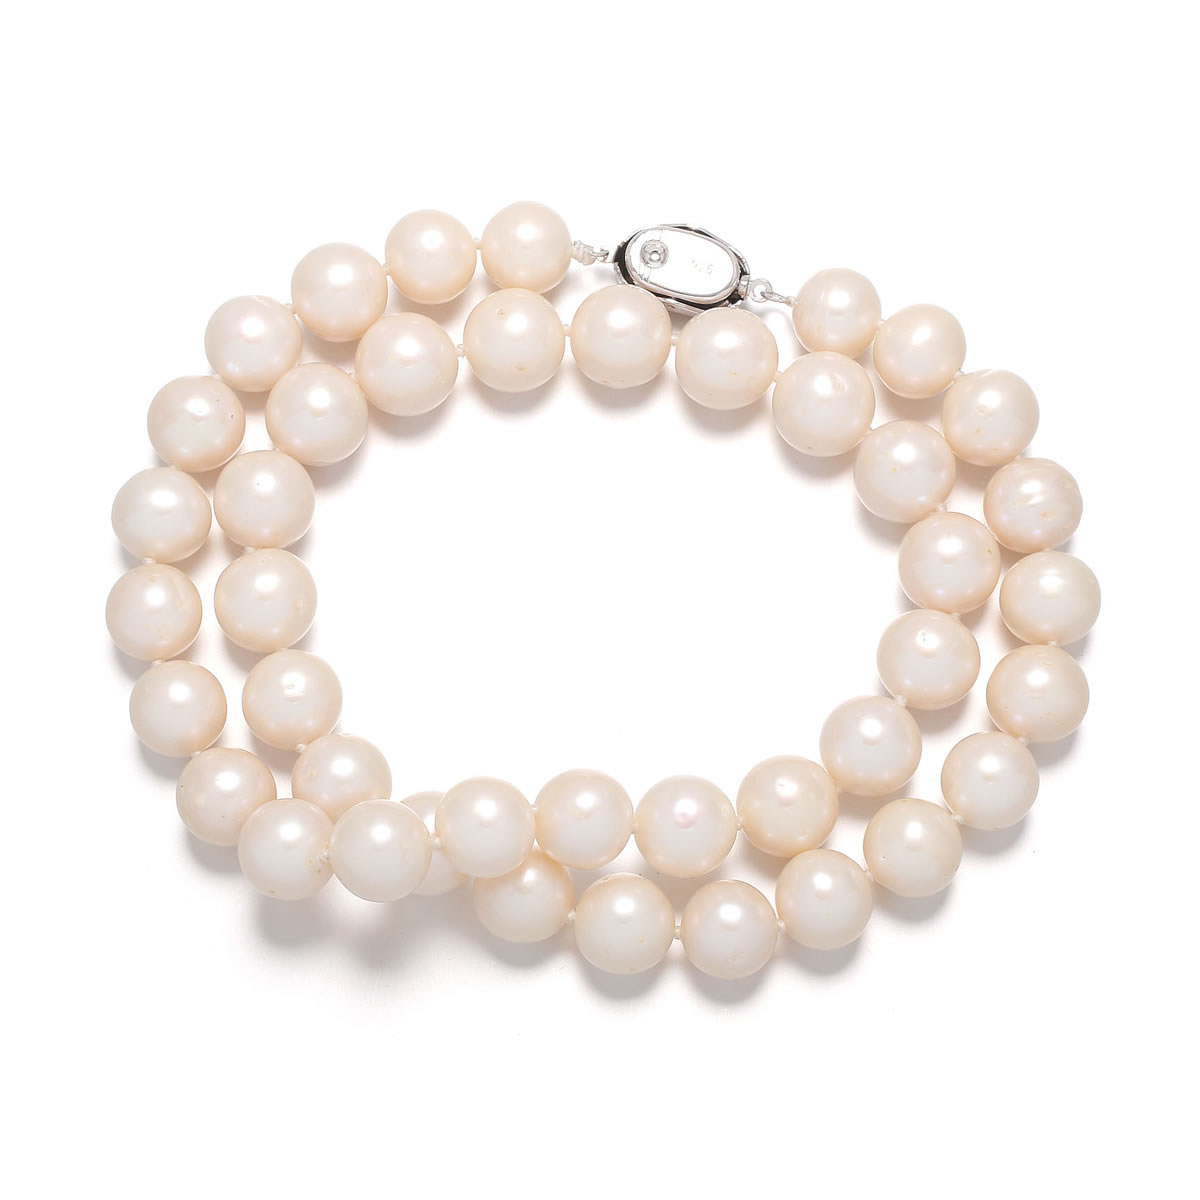 Pearl Necklace 9 10 mm 100 Natural Real Freshwater Pearl Necklaces for Women in Choker Necklaces from Jewelry Accessories